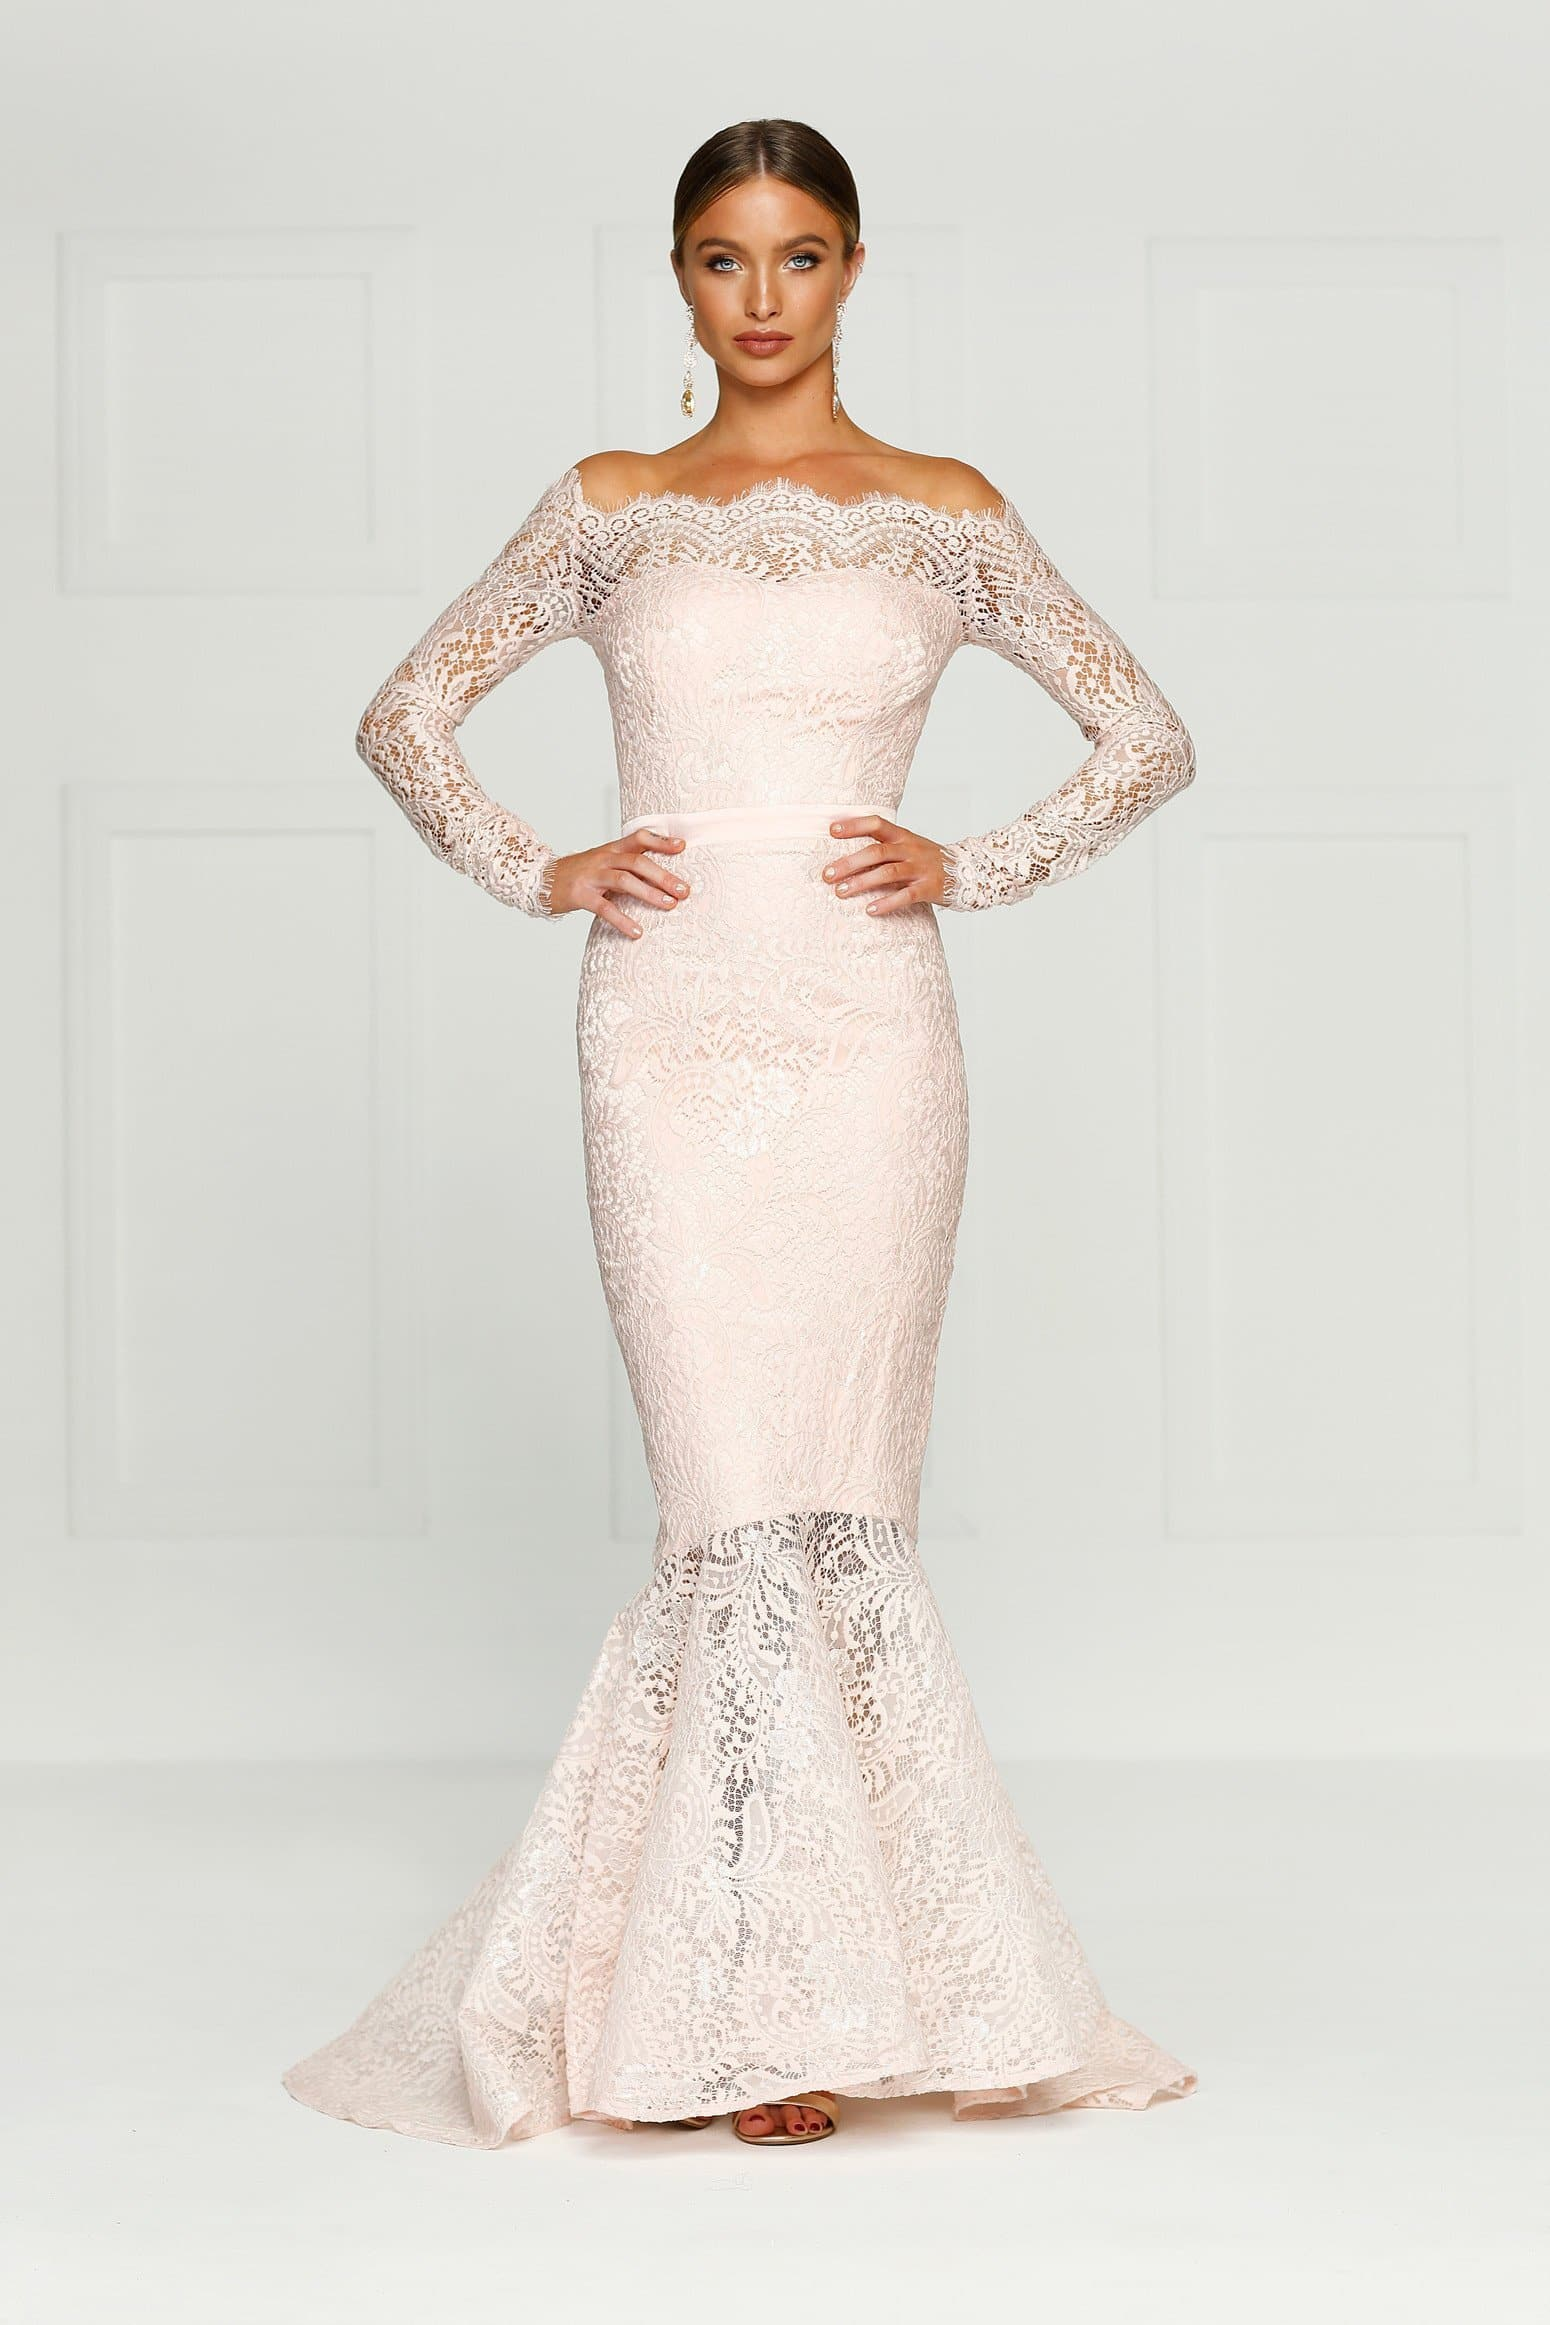 Kamali Lace Gown - Baby Pink Formal Dress with Curved Hugging Fit